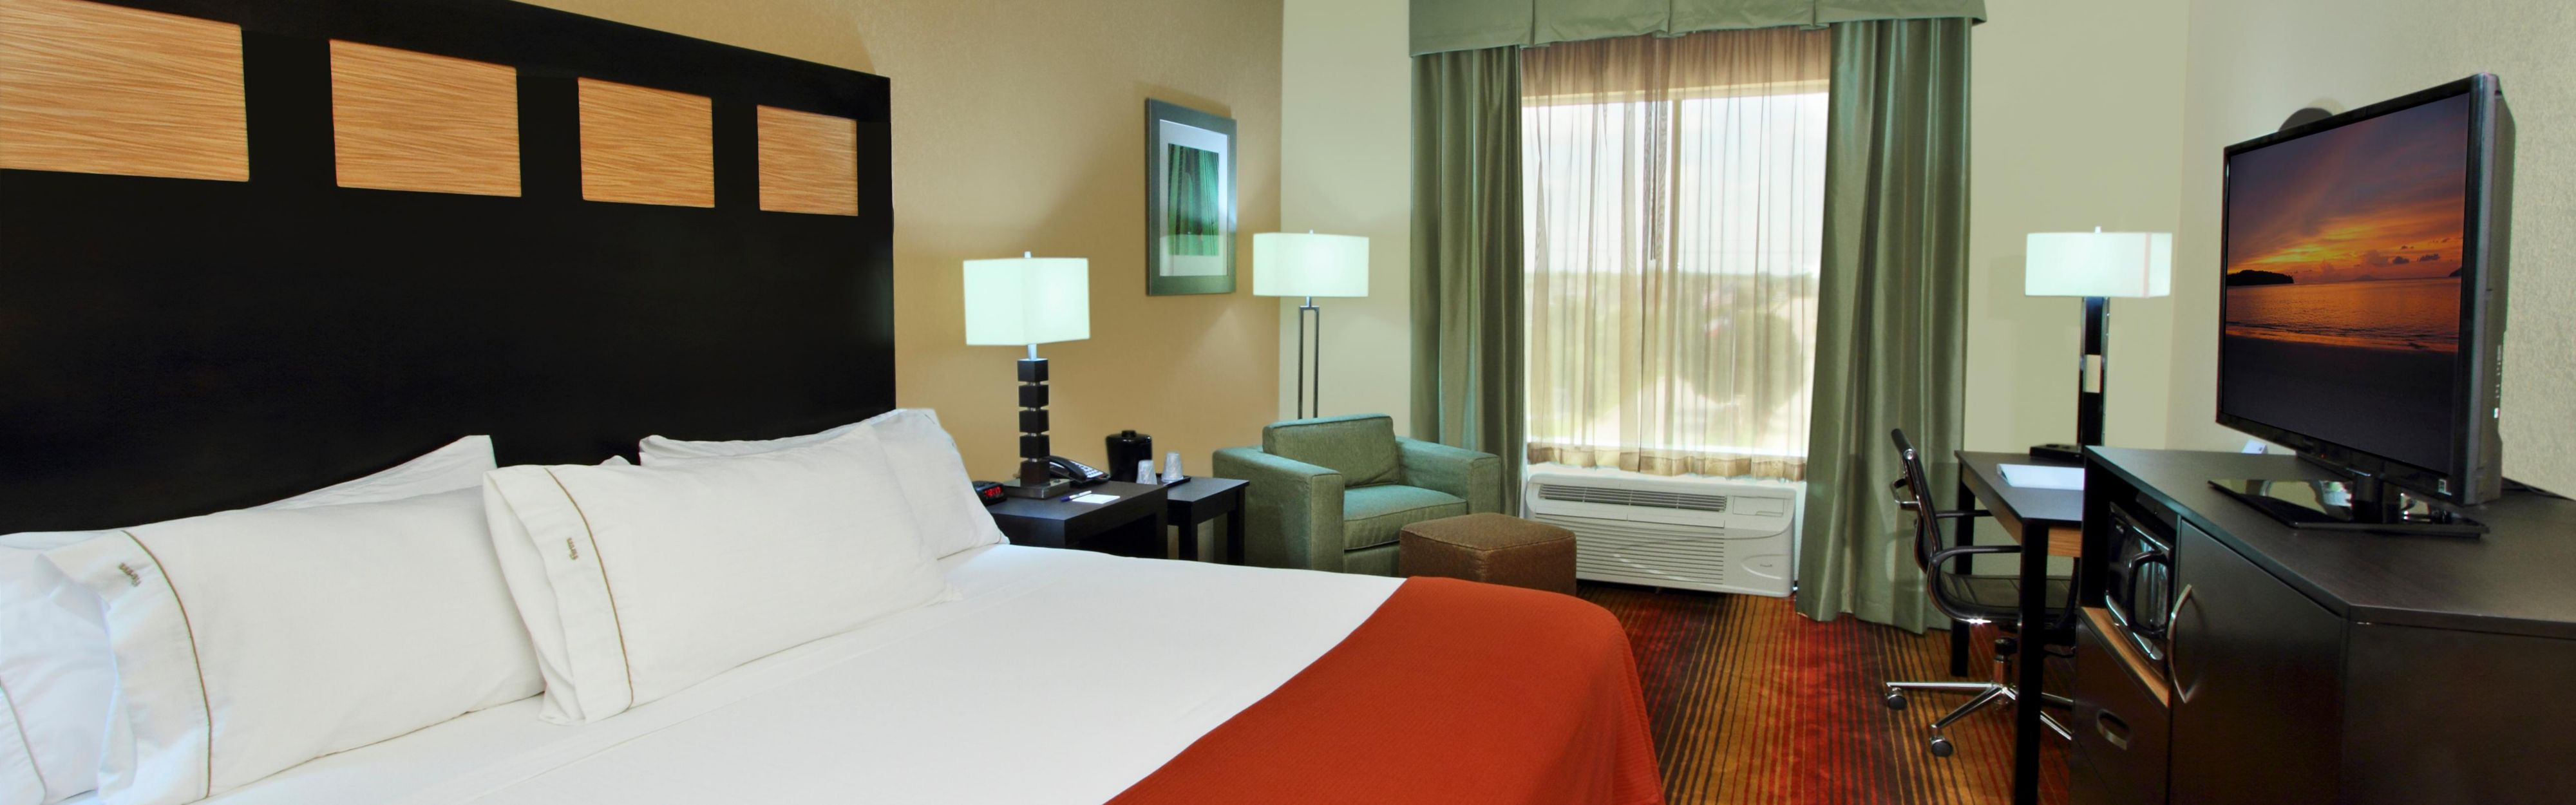 Holiday Inn Express & Suites Houston East - Baytown image 1